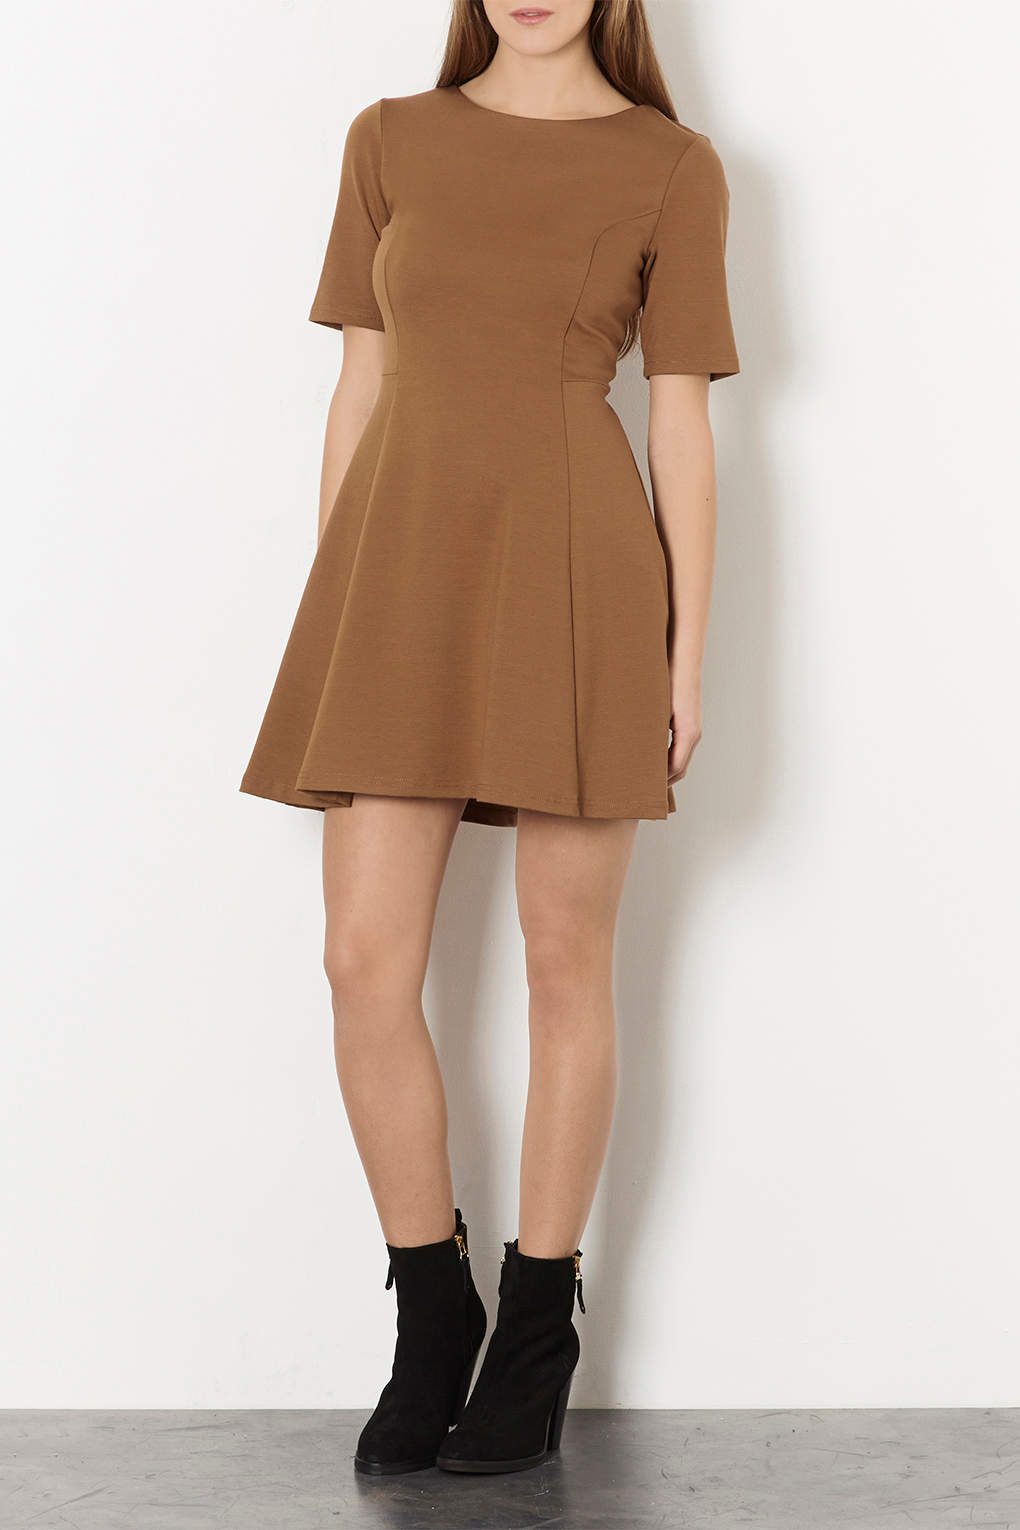 72cfbeefbe70 Lyst - TOPSHOP A Line Smart Skater Dress in Brown